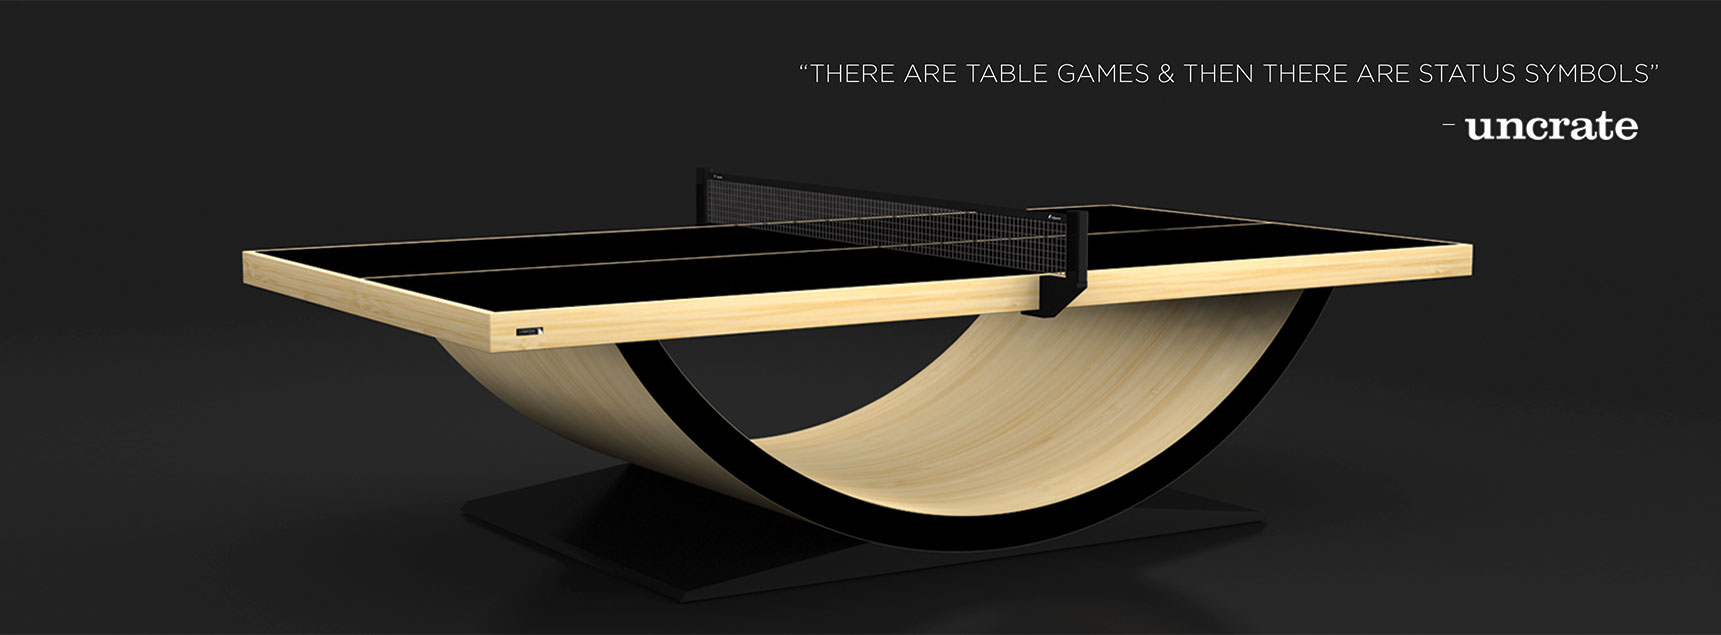 Theseus Table Tennis